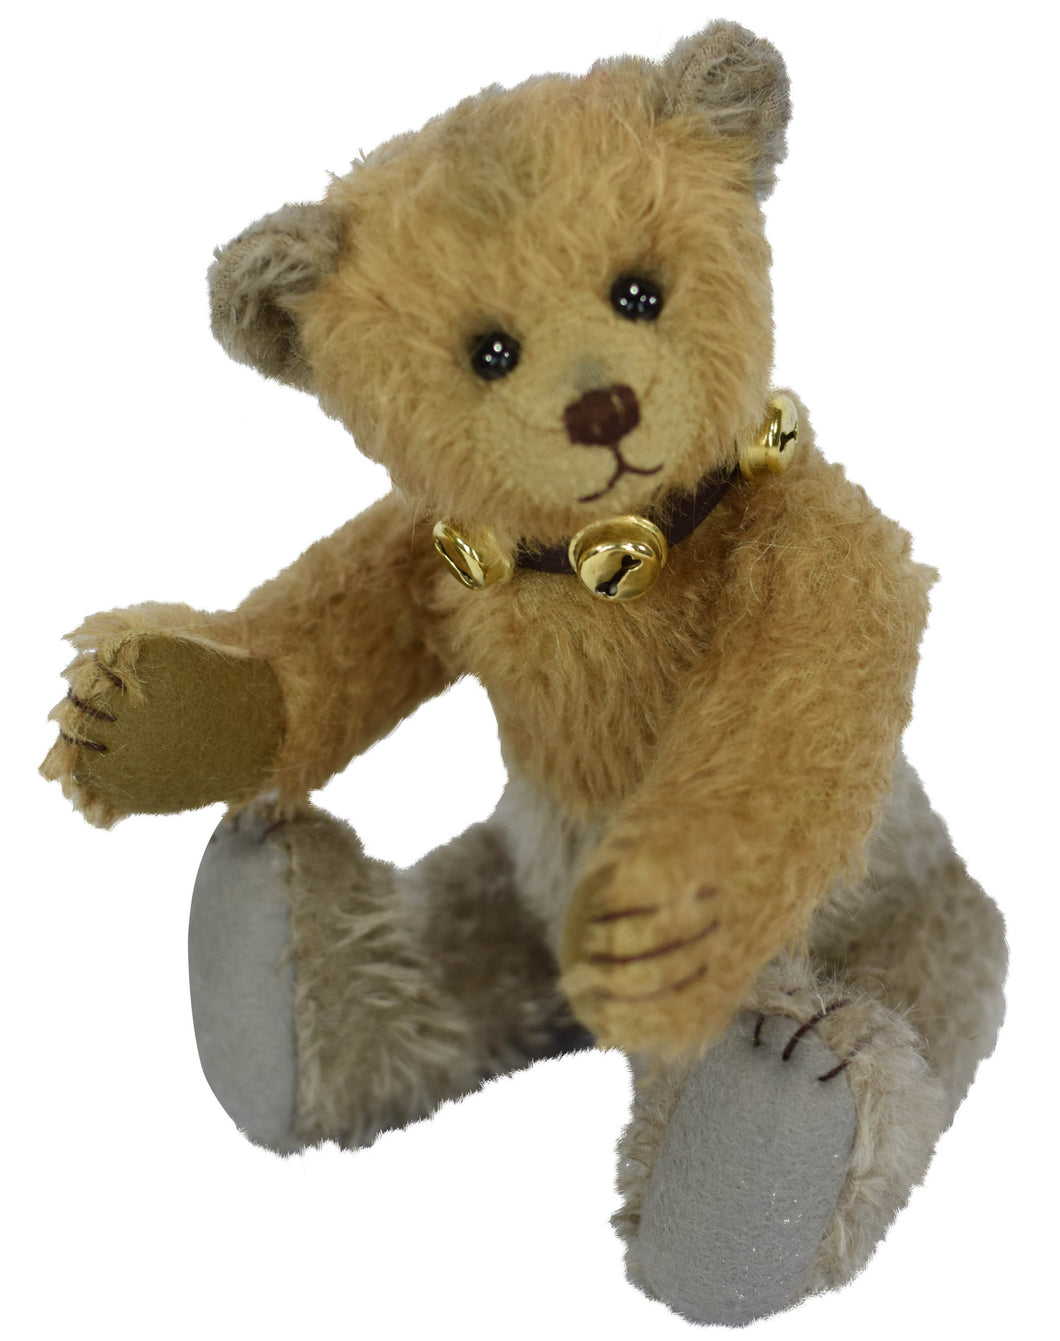 Sold out! TEDDY MATHIS / CLEMENS MOHAIR ARTIST LIMITED BEAR